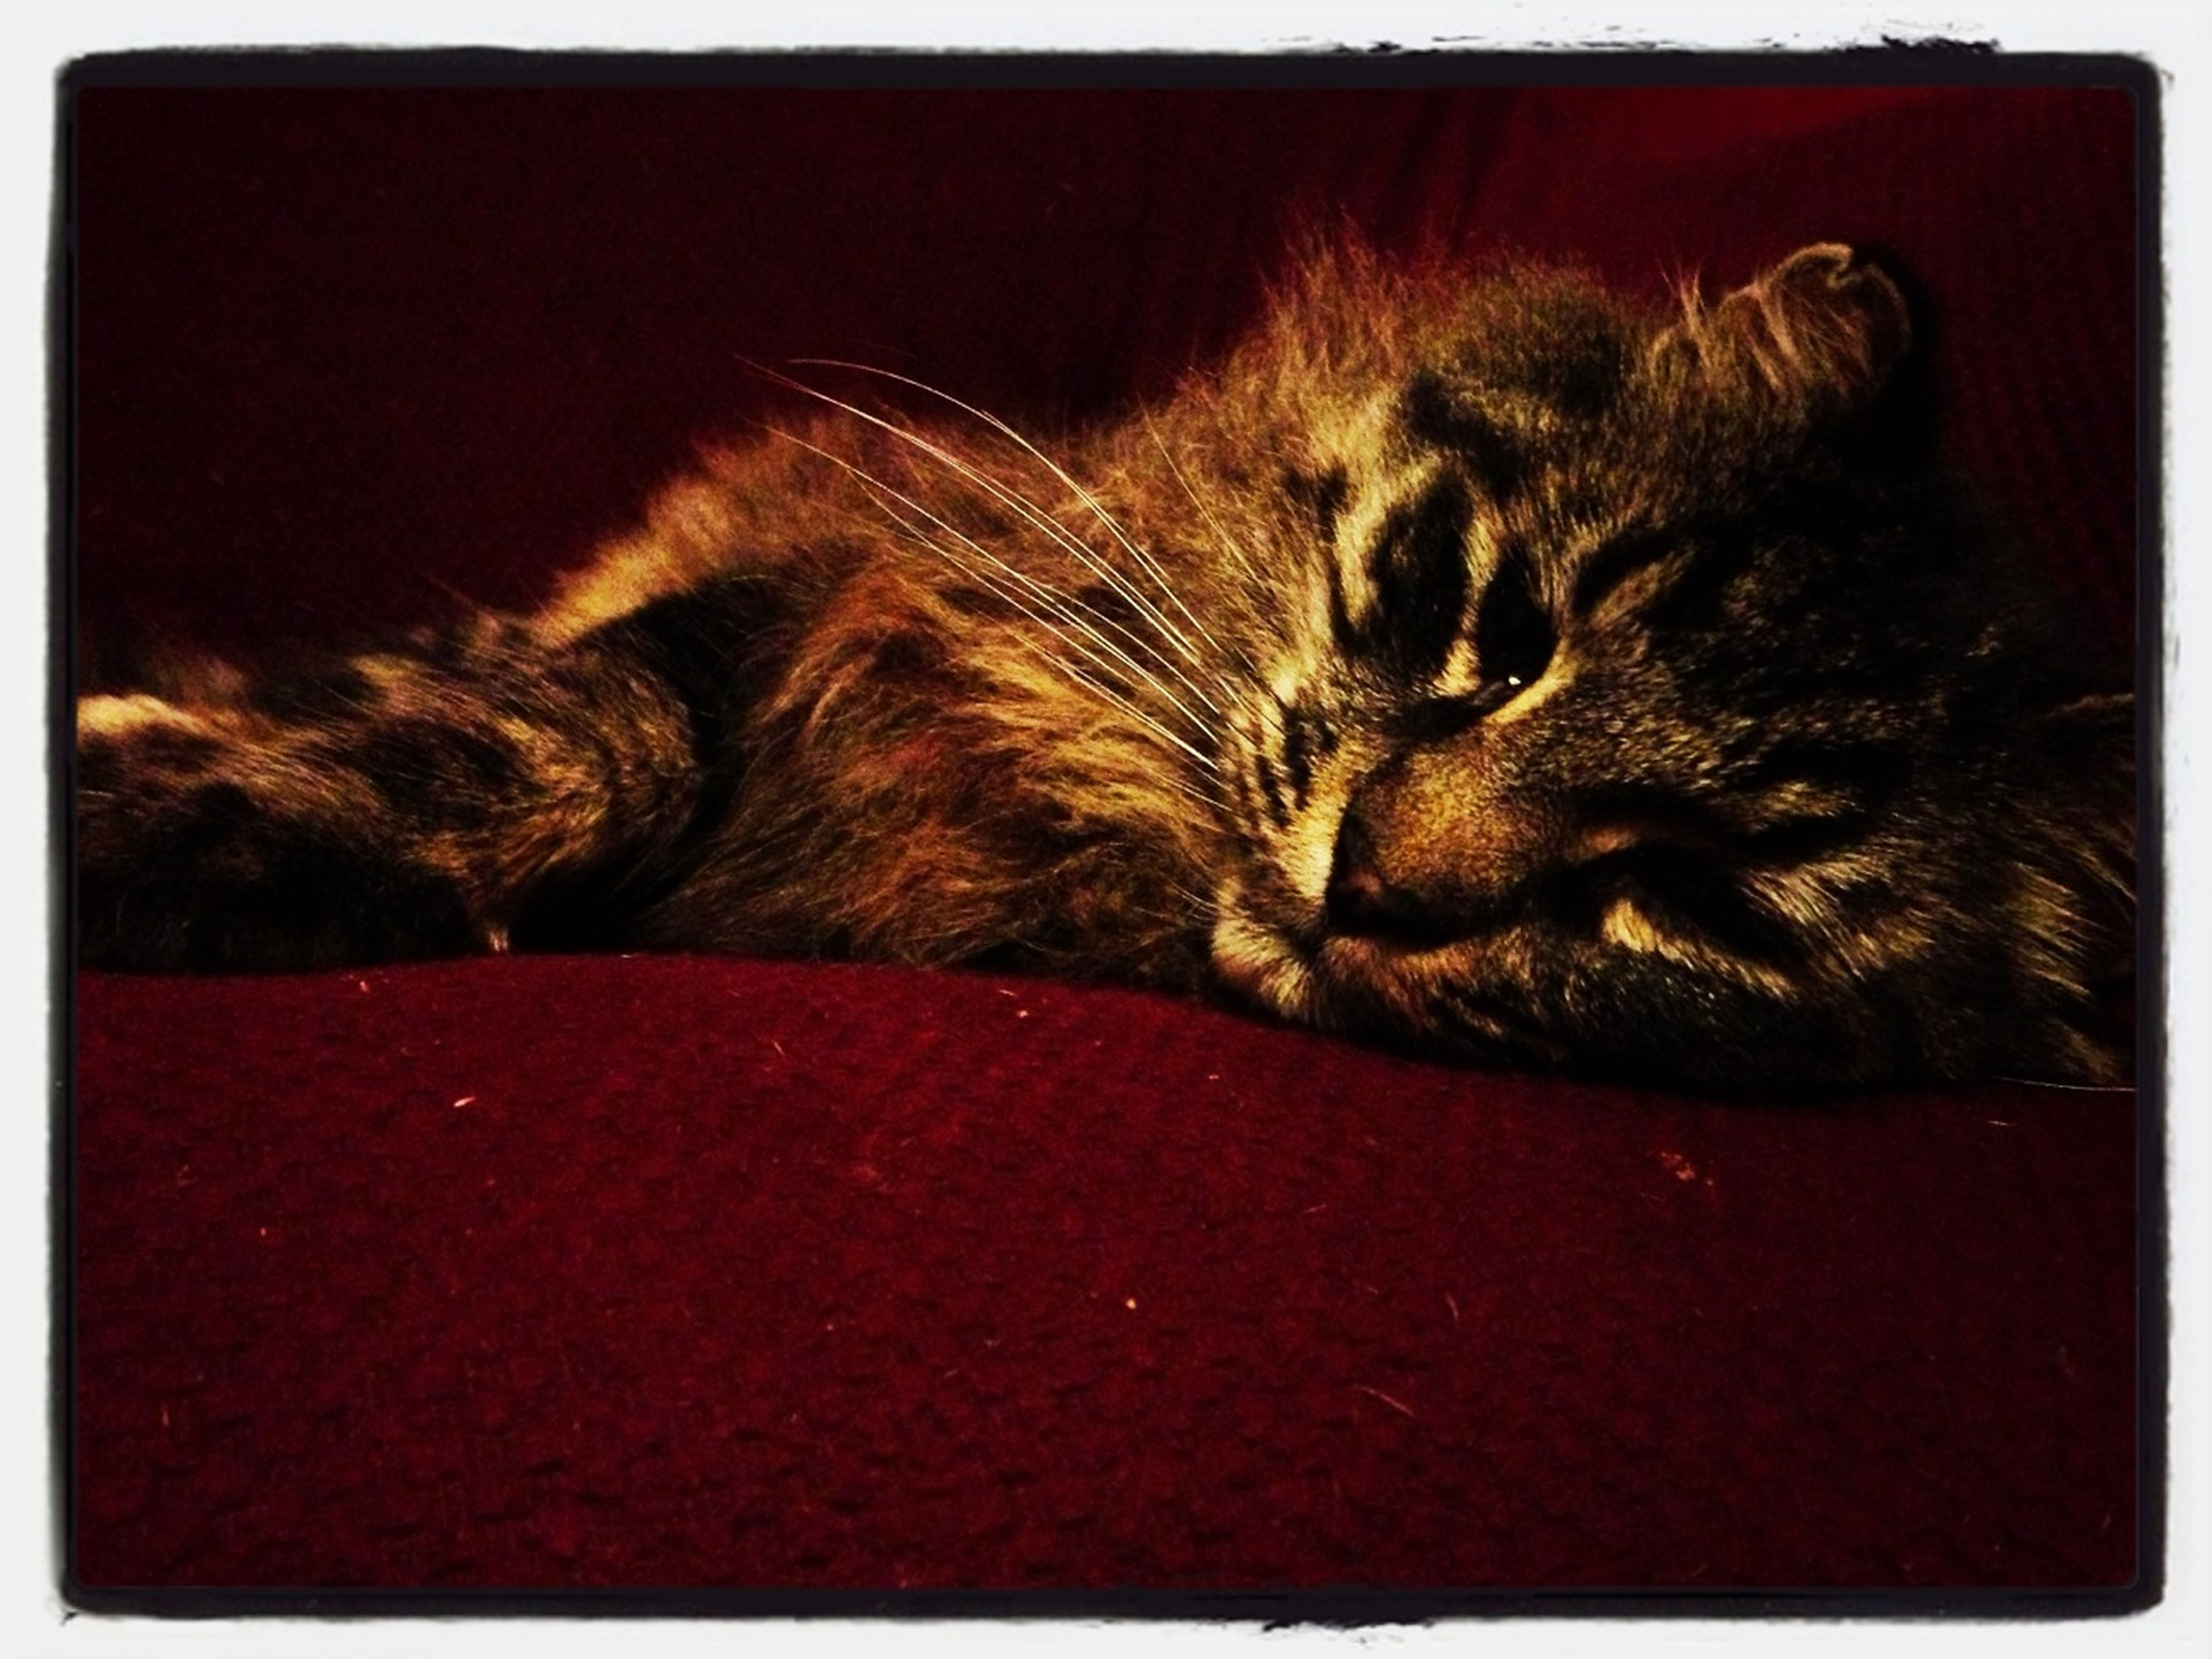 domestic cat, pets, animal themes, cat, one animal, domestic animals, mammal, feline, whisker, relaxation, sleeping, resting, transfer print, lying down, eyes closed, indoors, auto post production filter, close-up, animal head, tabby